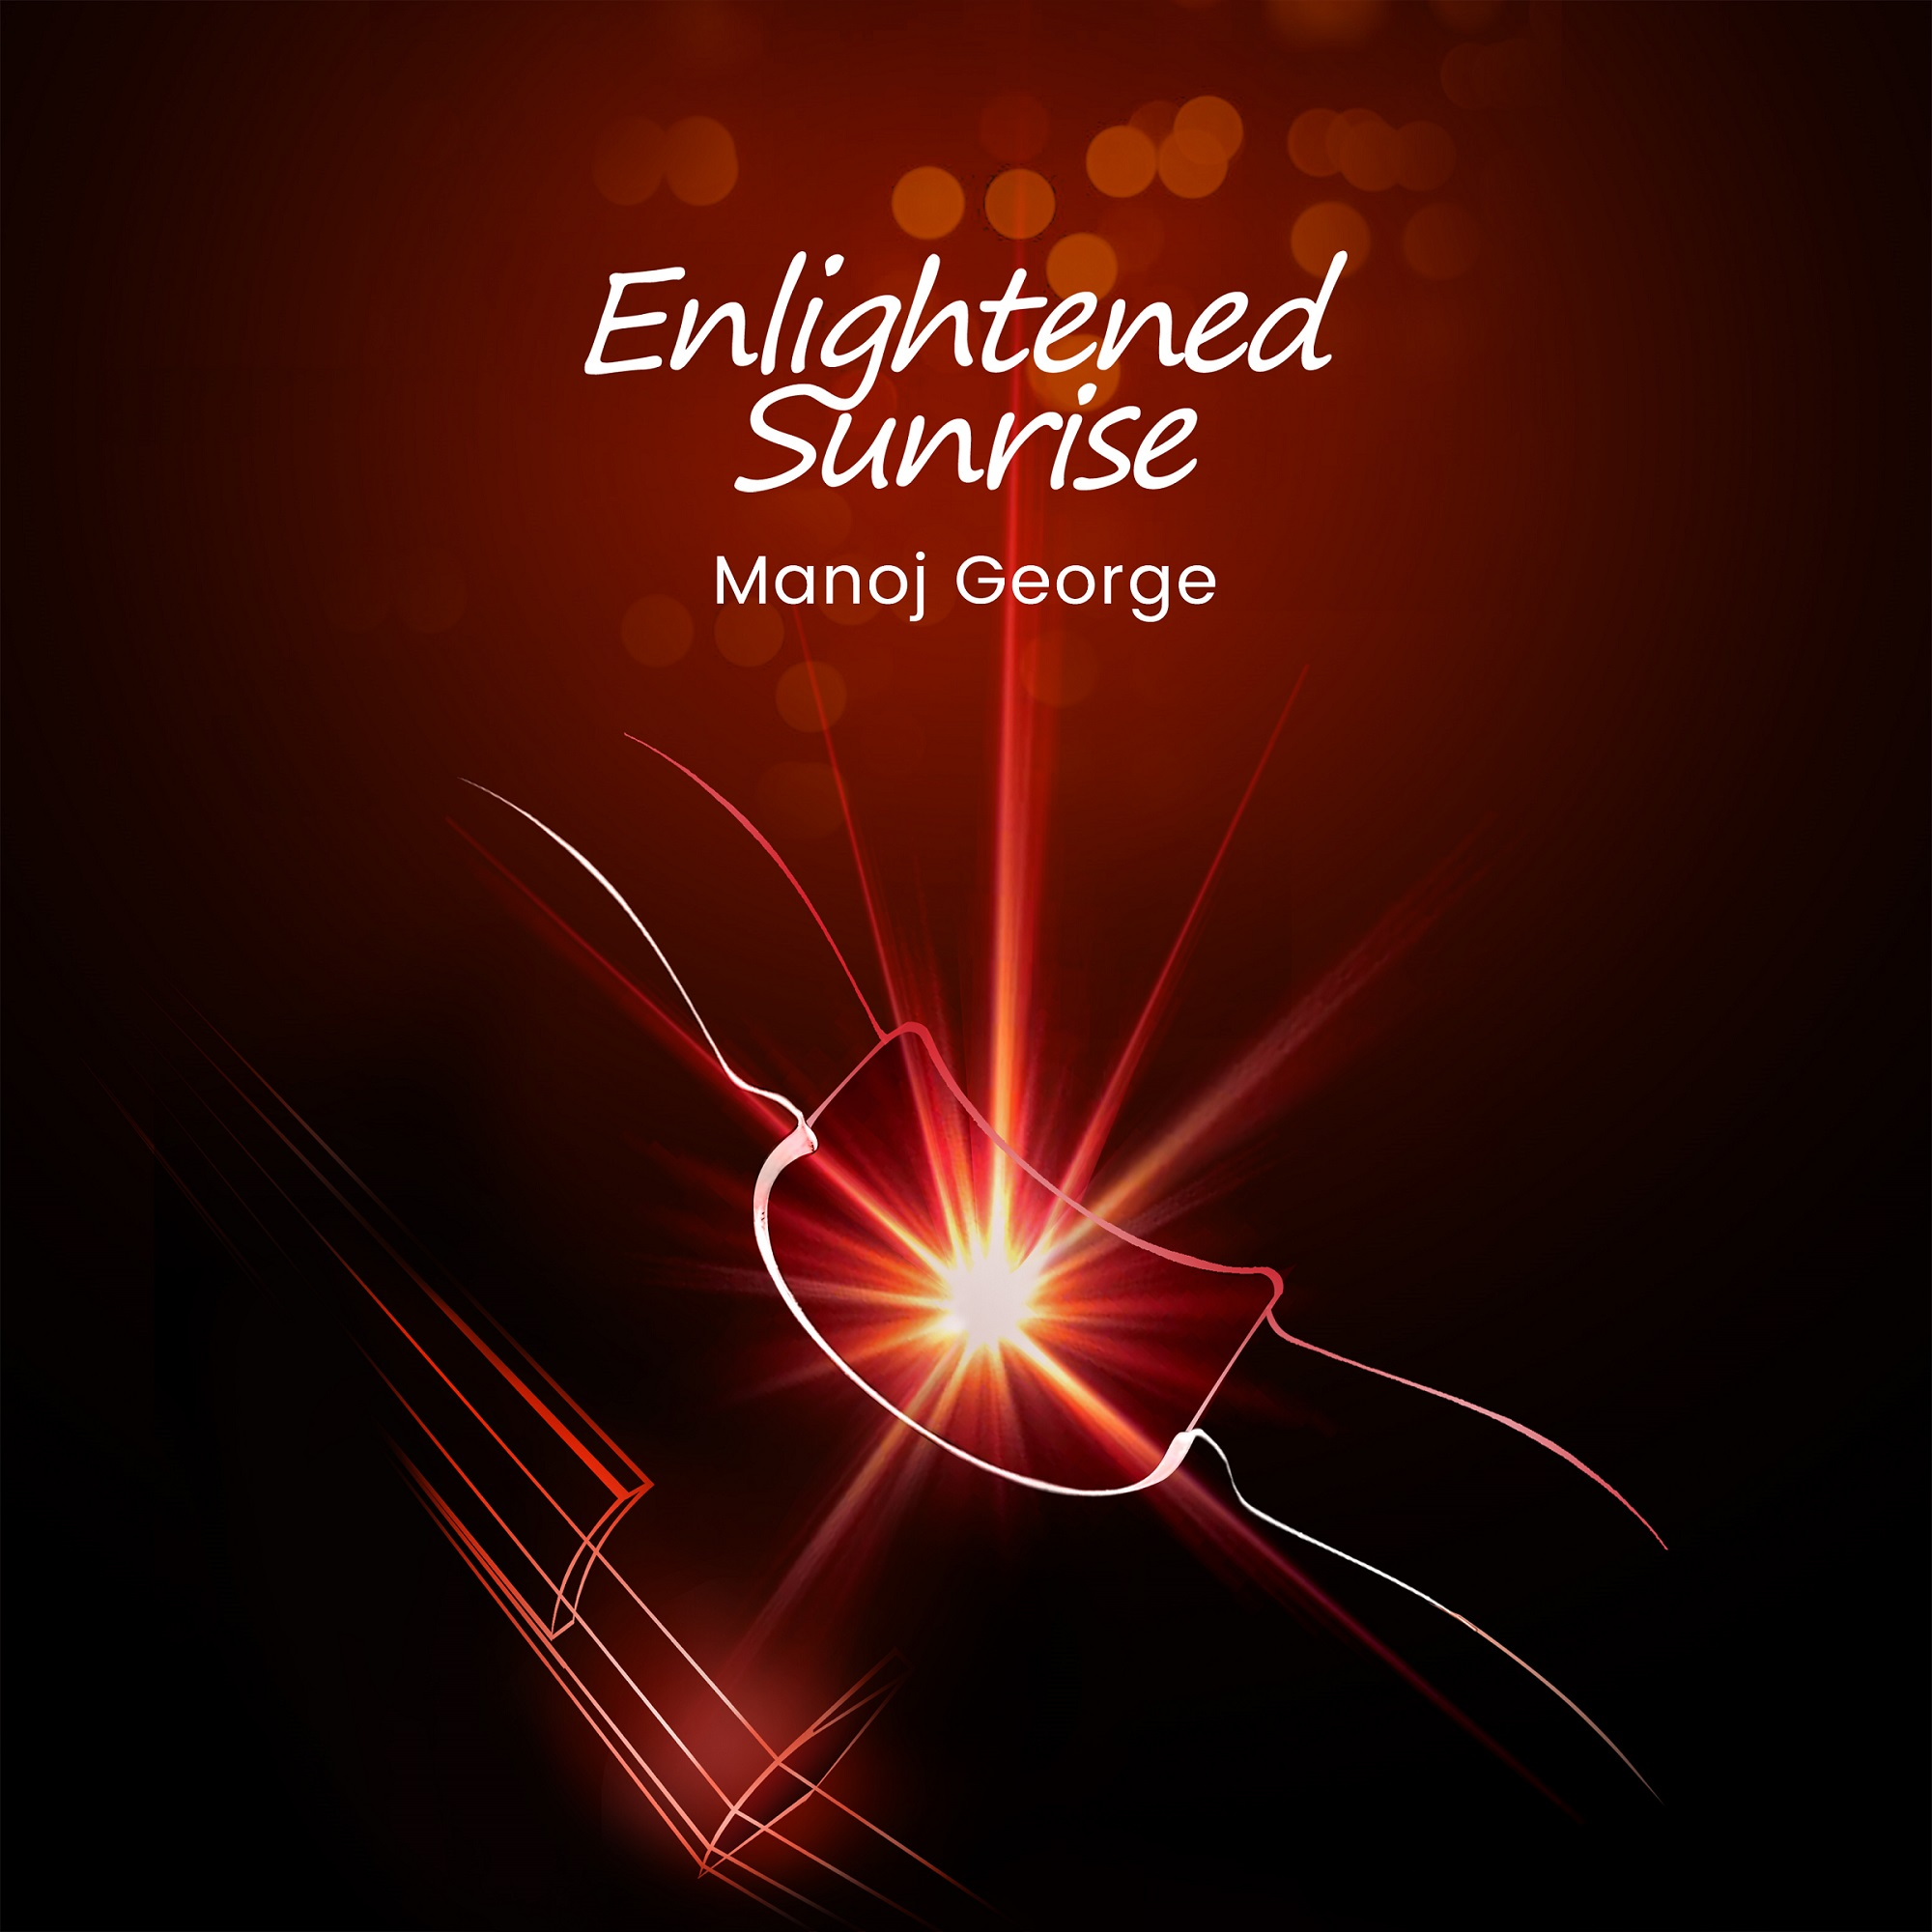 Instrumental album enlightened sunrise by Manoj George